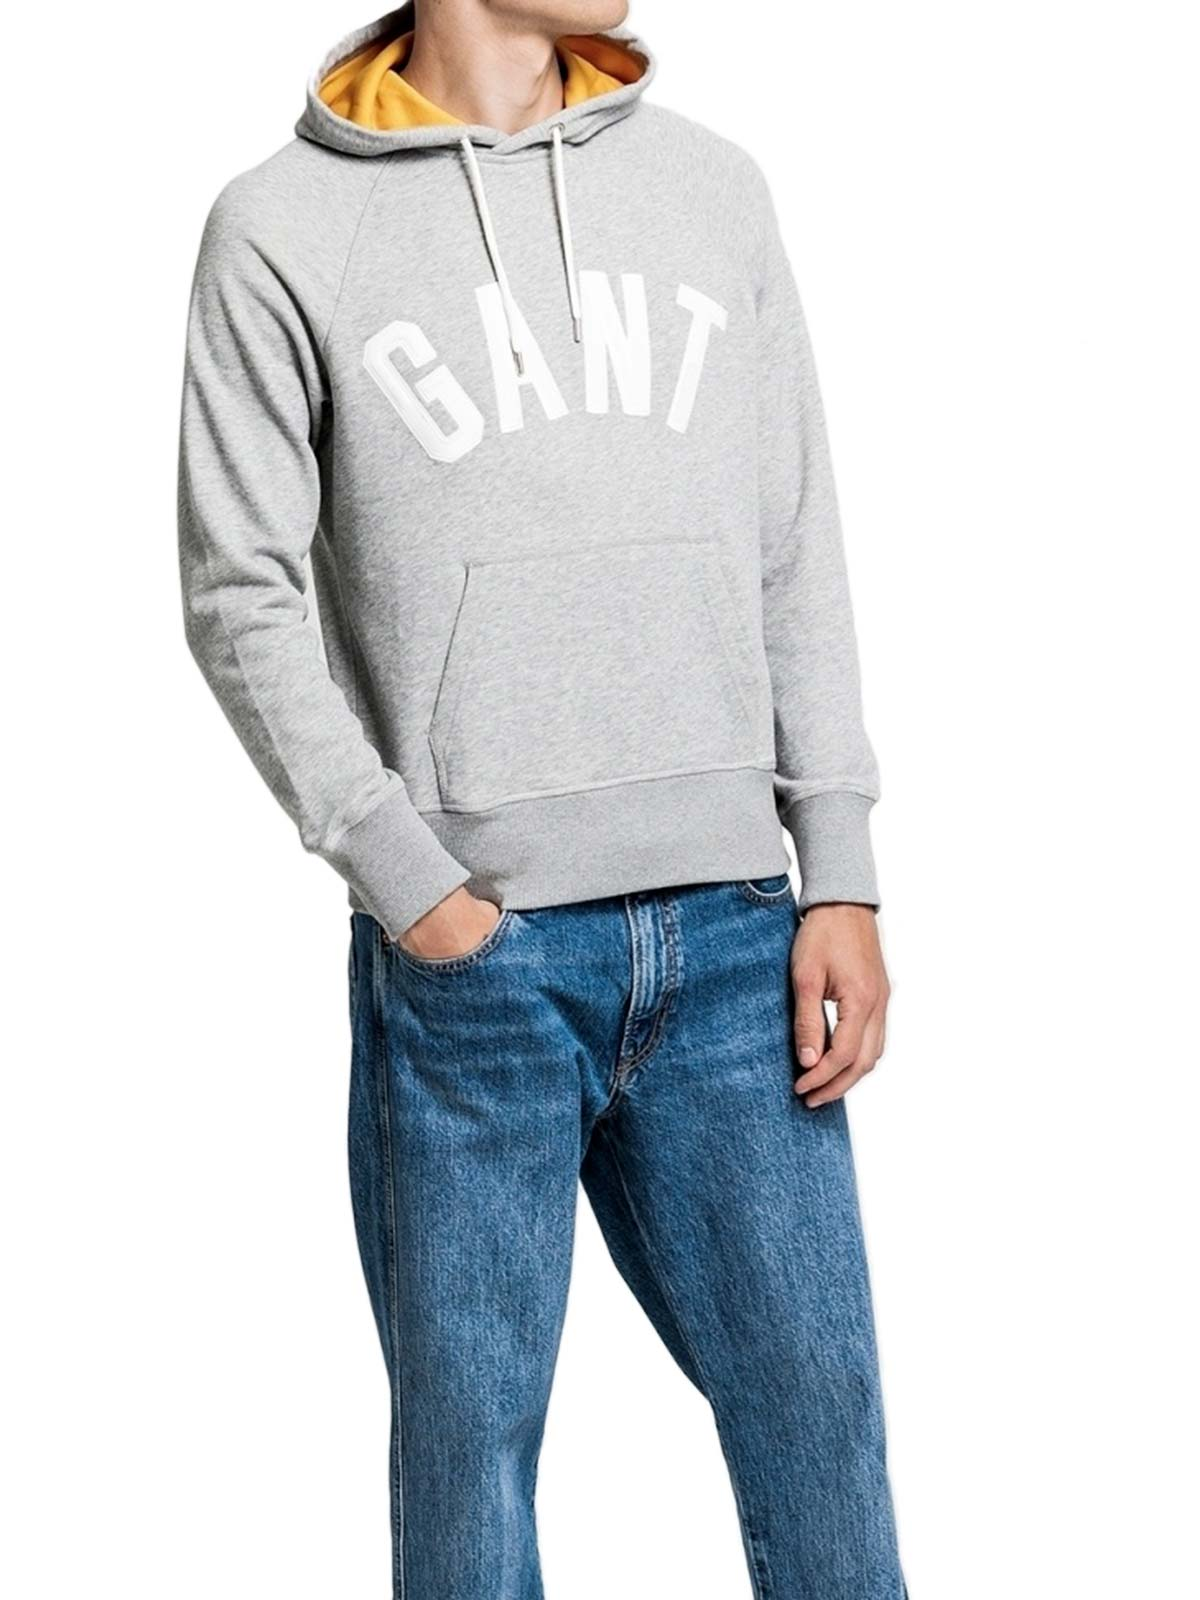 Picture of GANT | Men's Hoodie Sweatshirt